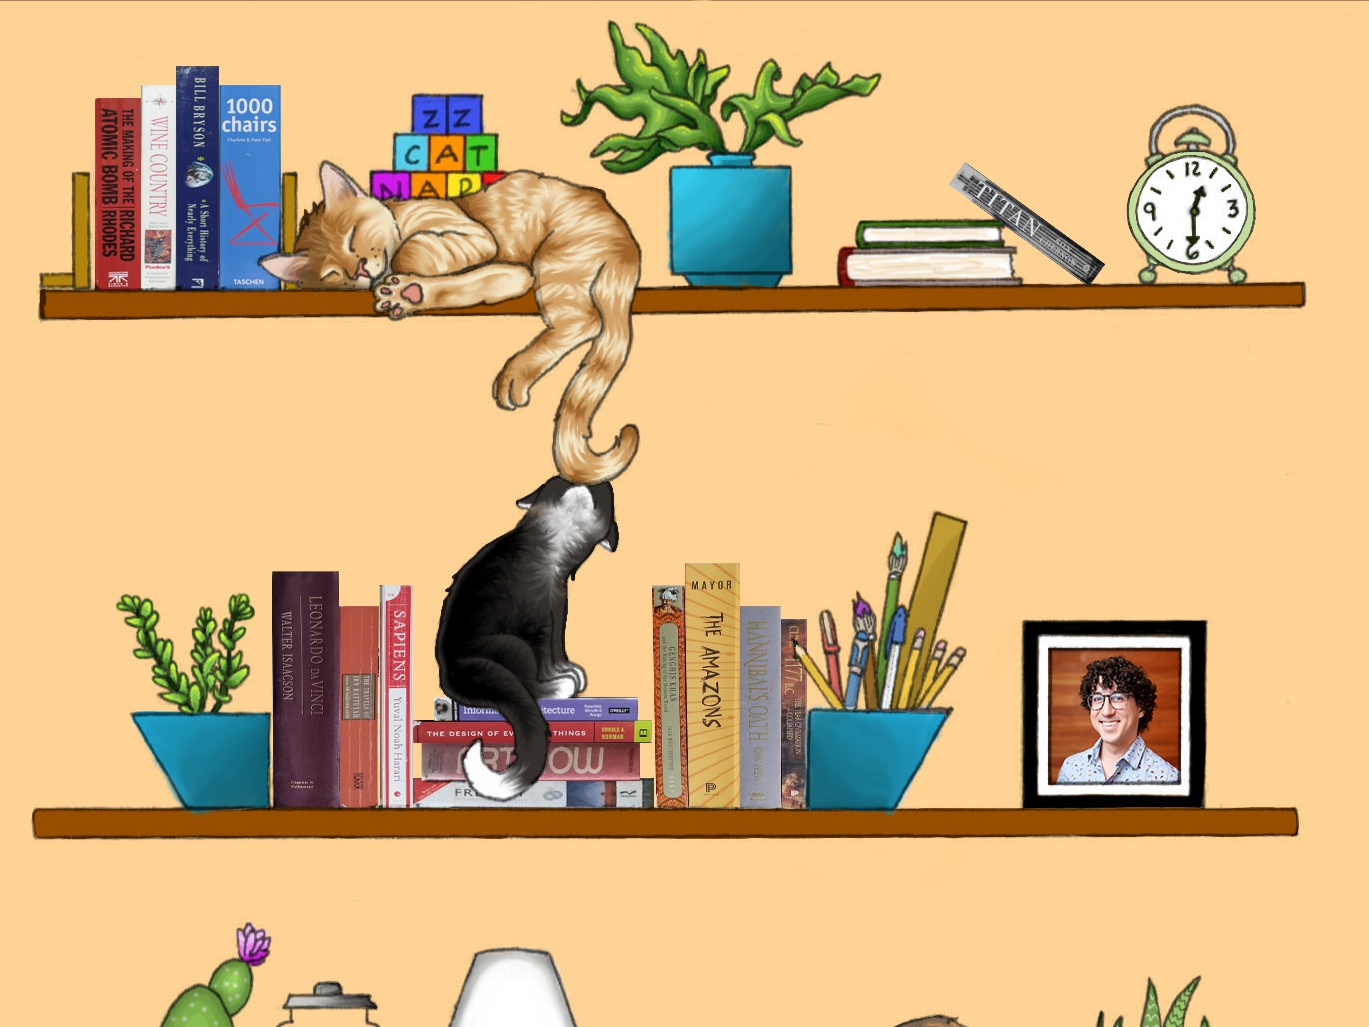 Cats On Shelves (1)